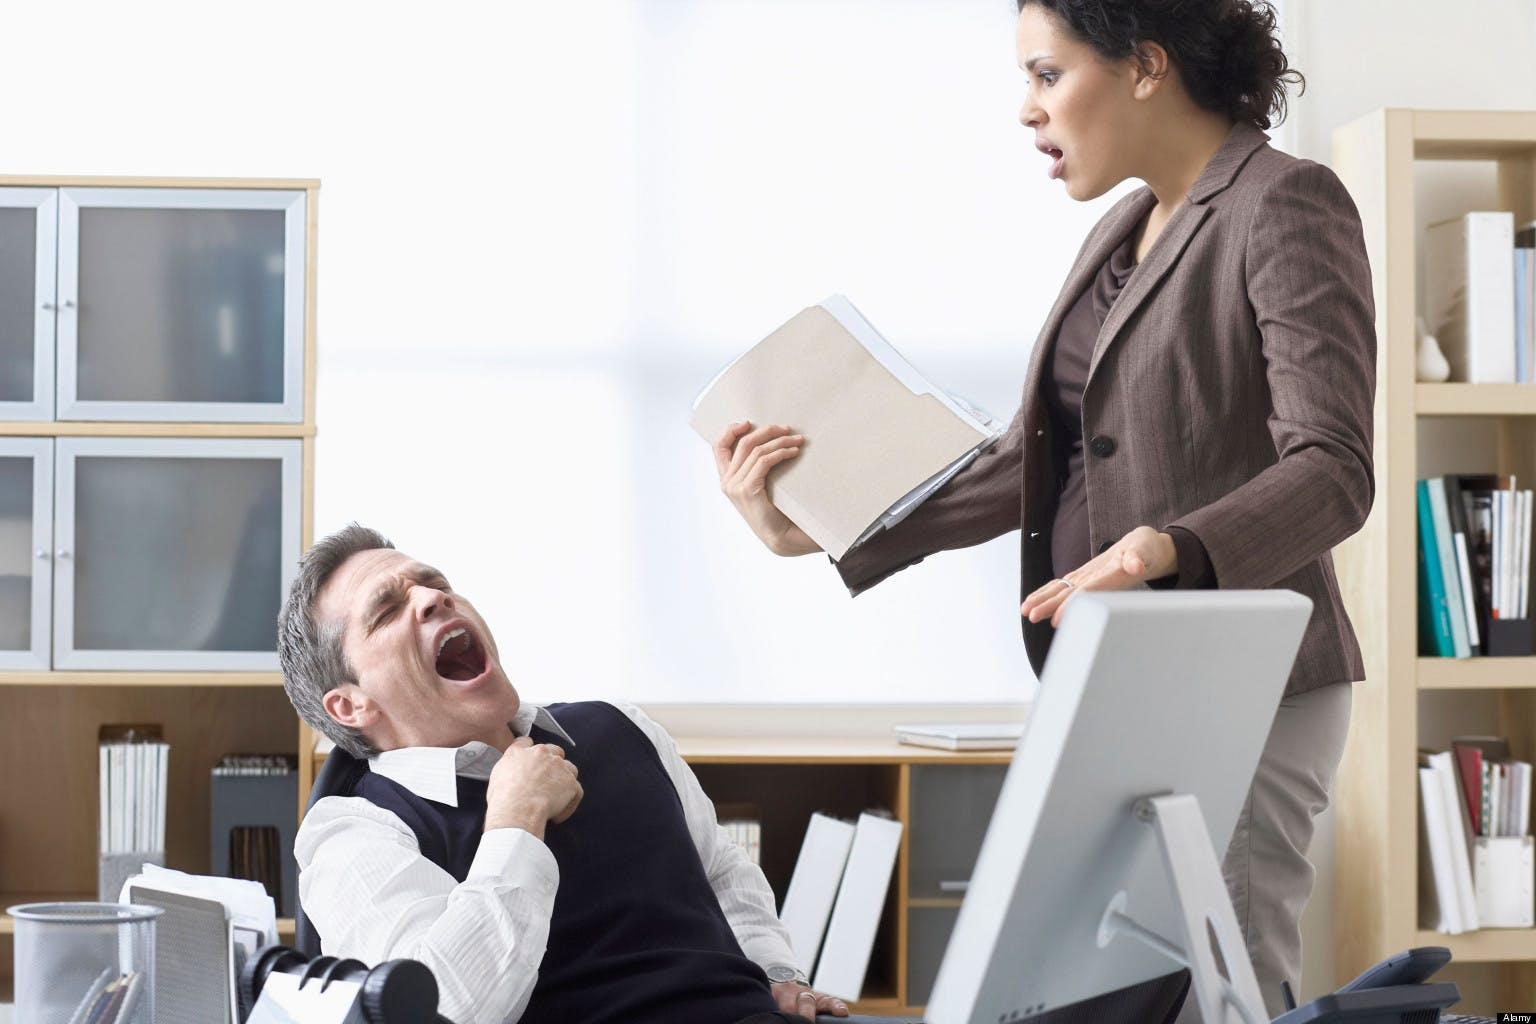 Your 7 Most Annoying Co-workers (and How to Make Sure They